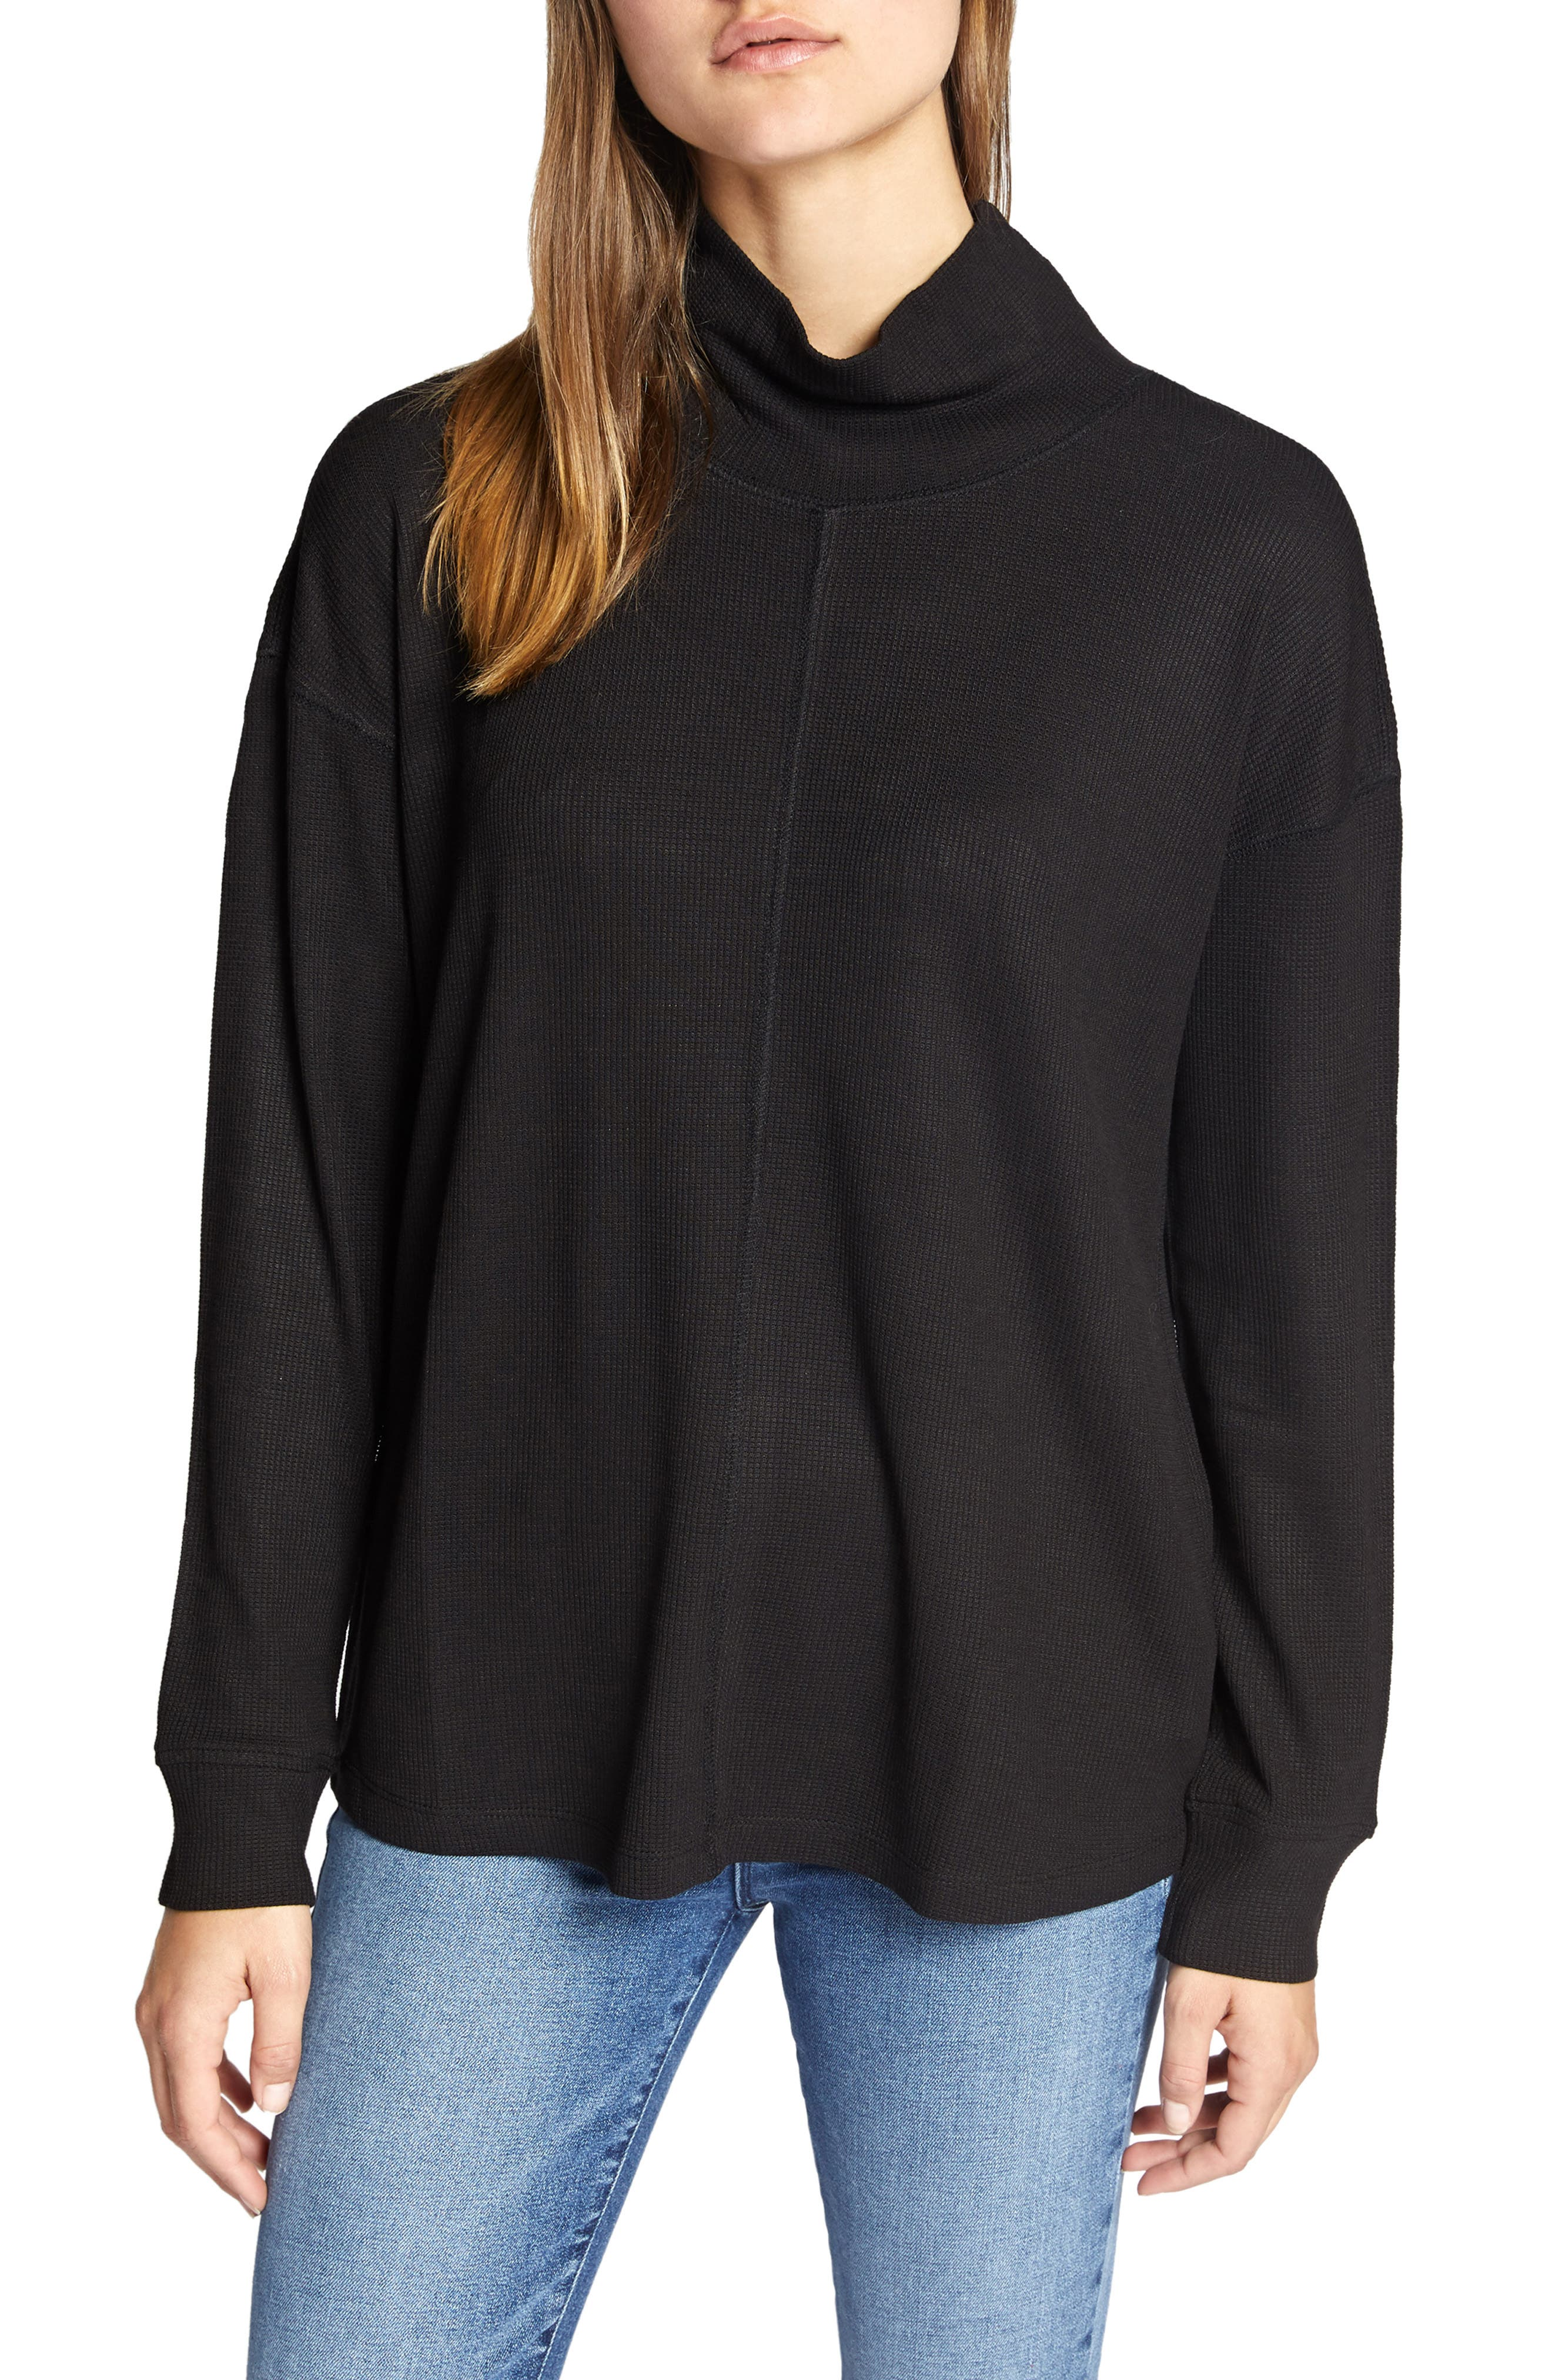 High Road Waffle Knit Tee in Black